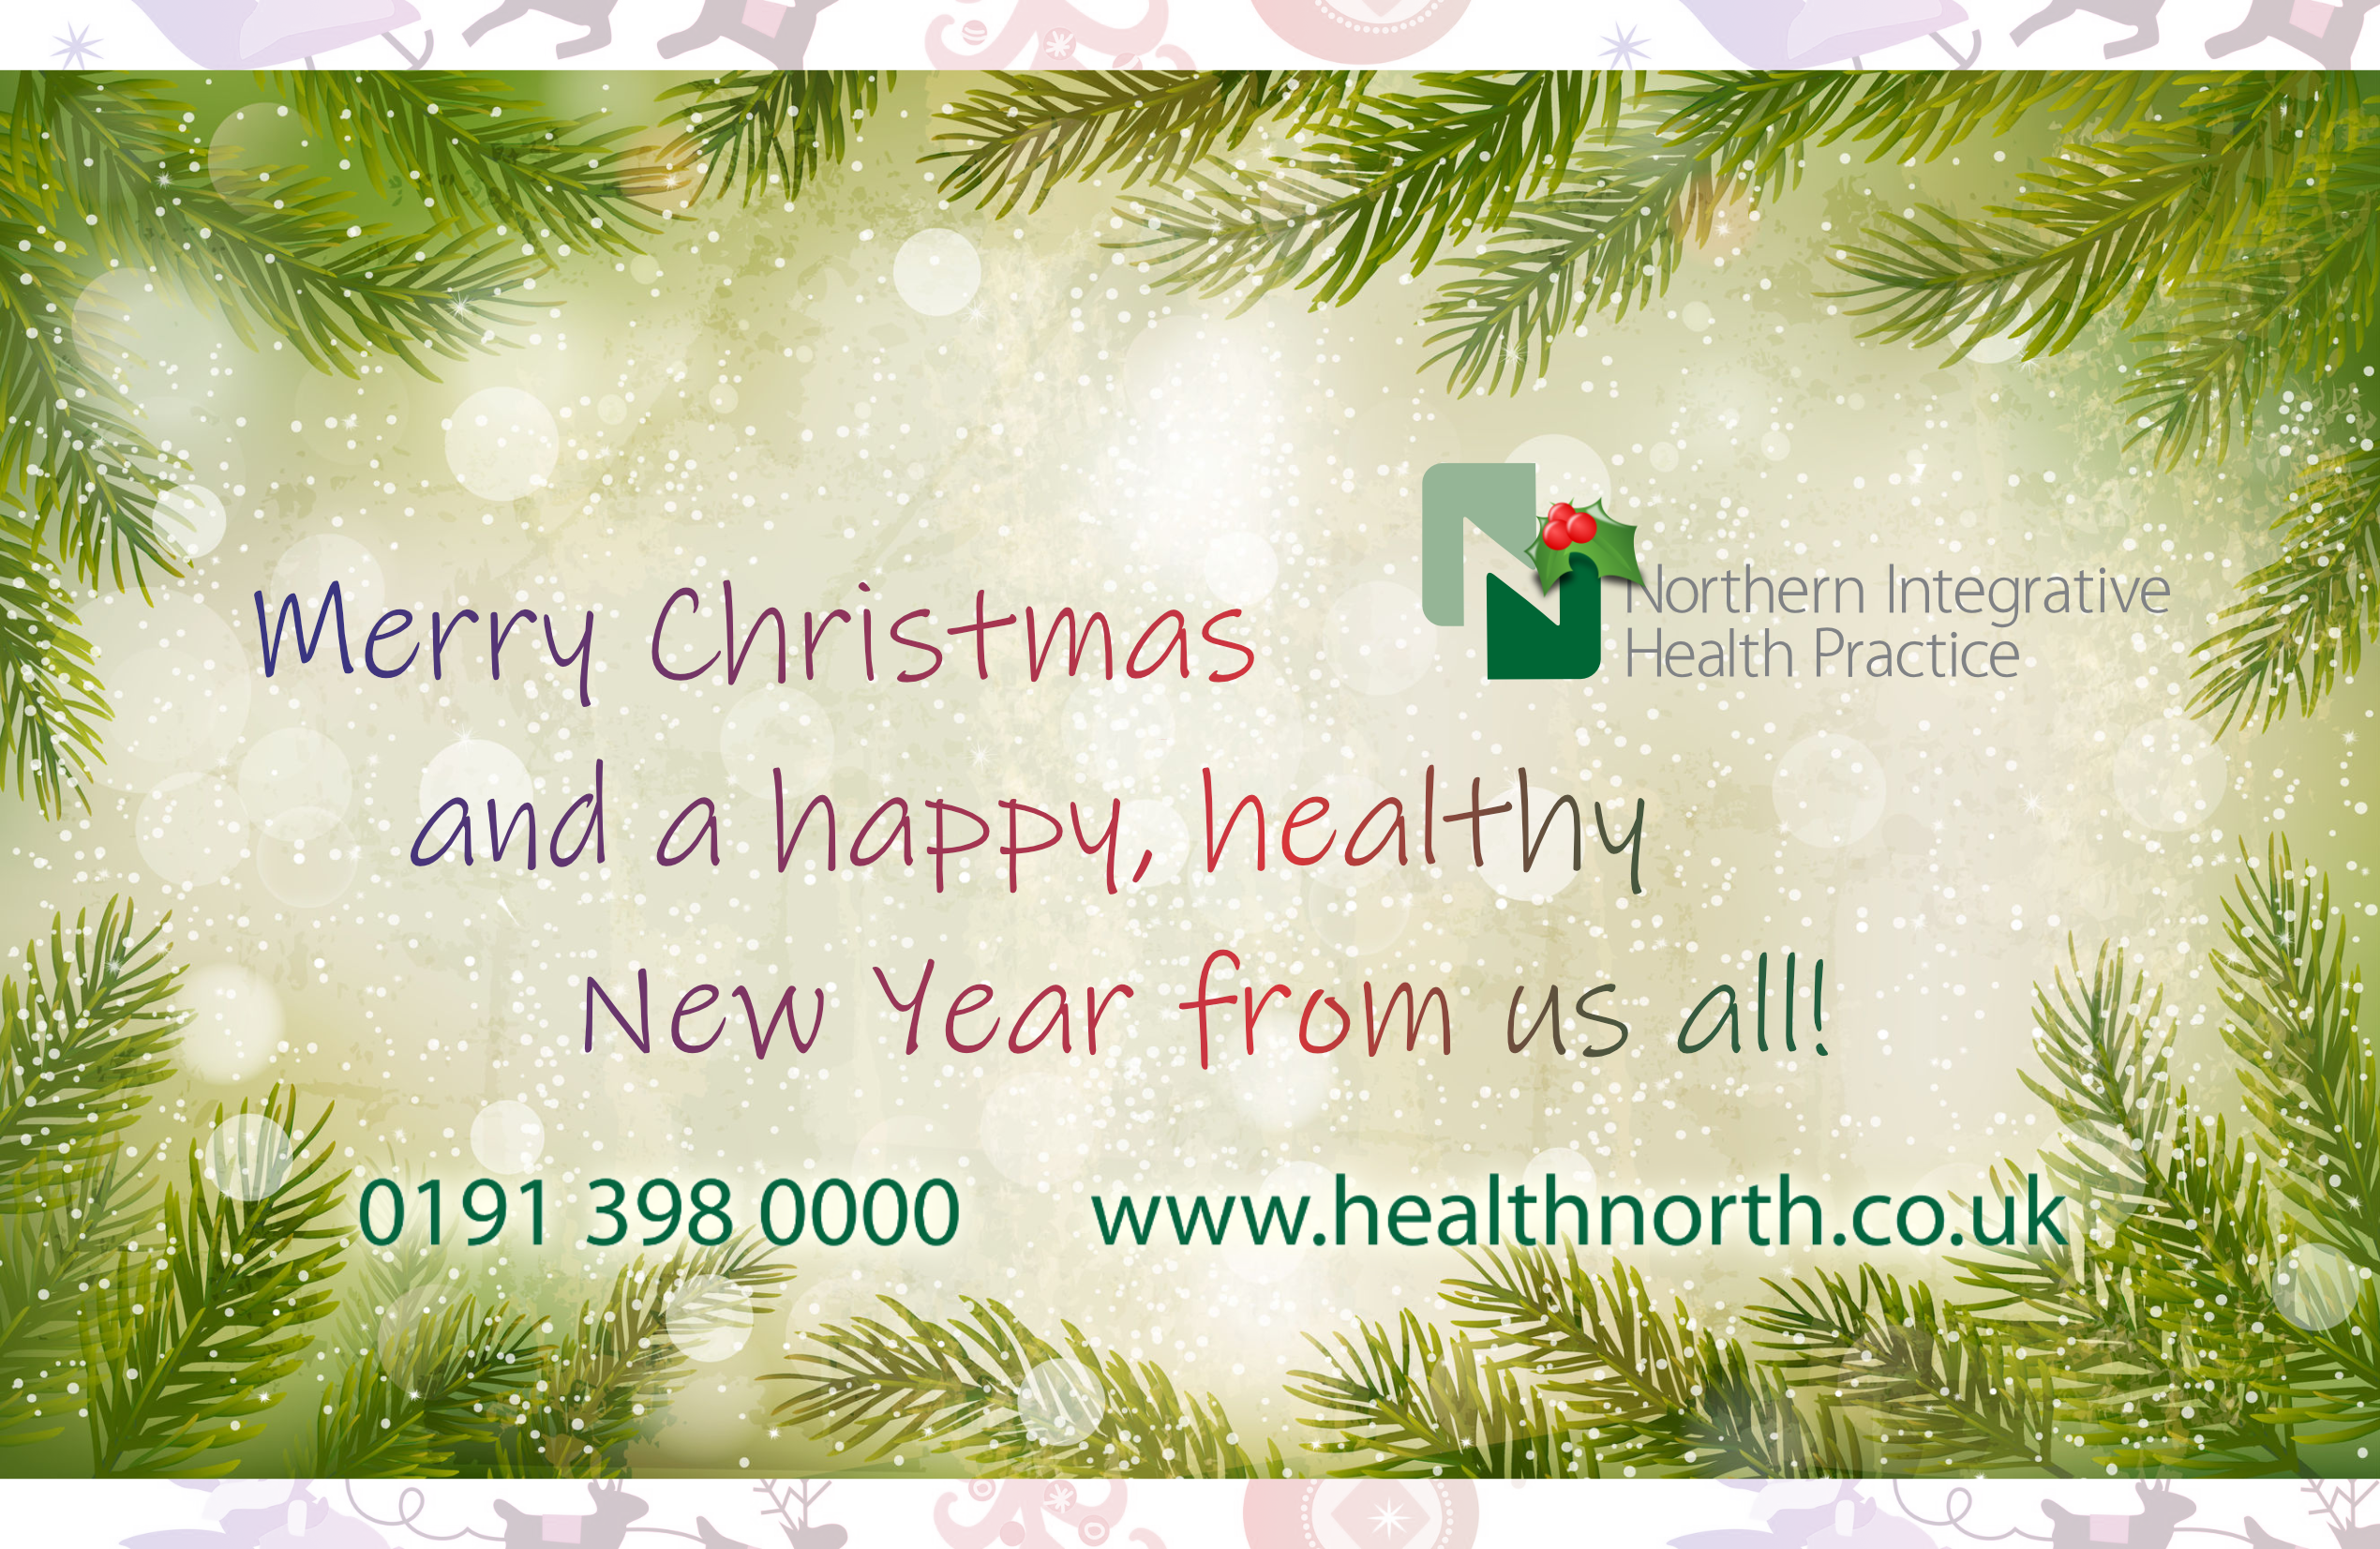 Marry Christmas and a happy, healthy new year from NIHP Durham